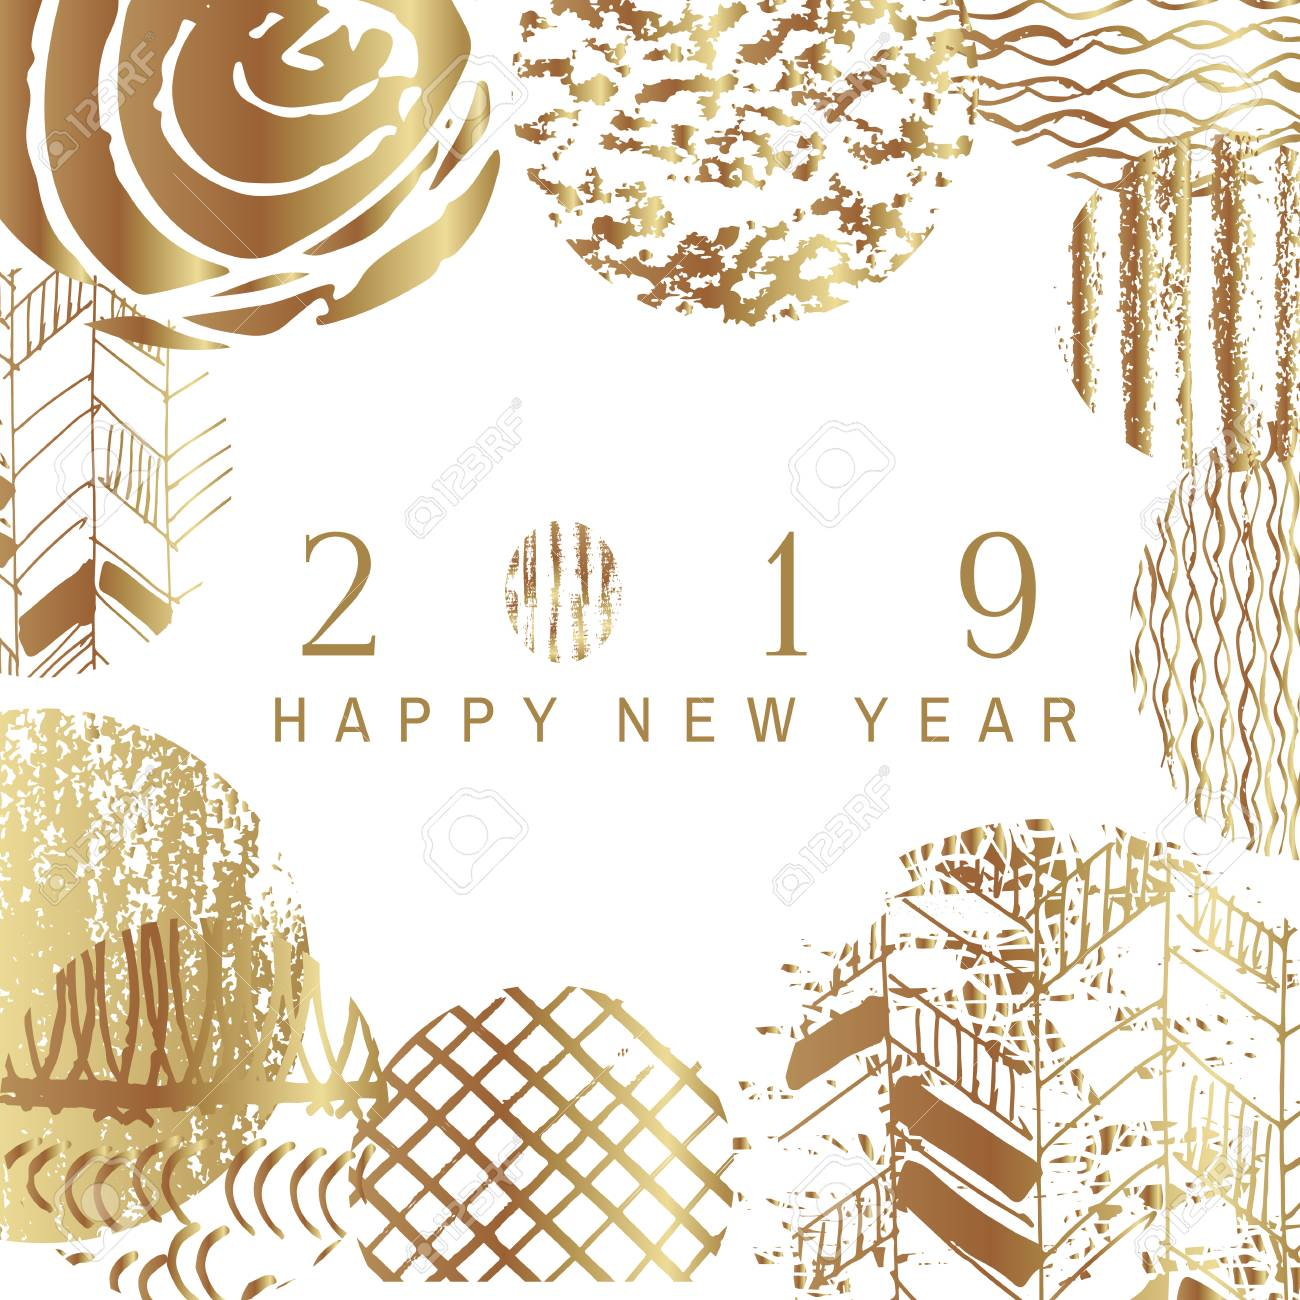 2019 happy new year golden art backgrounds for your template